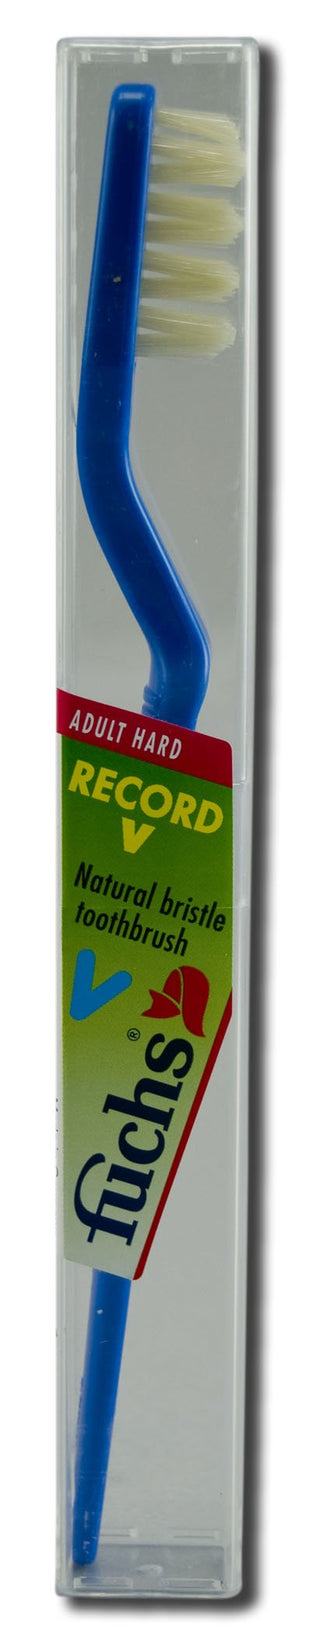 FUCHS RECORD V TBRUSH,HARD, CT CASE_10